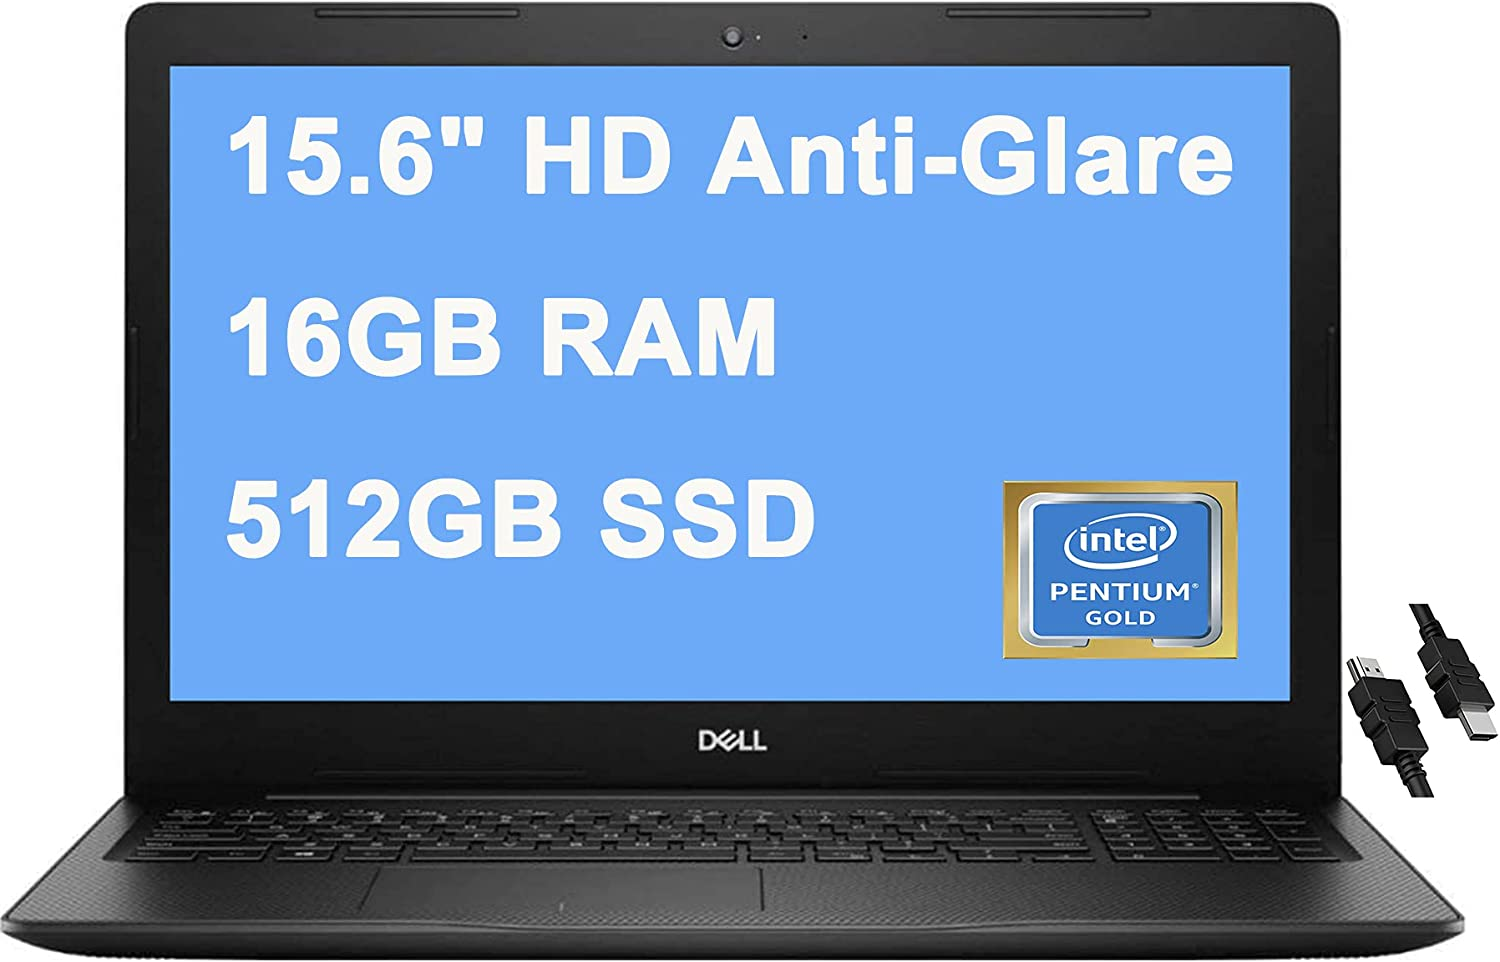 2020 Flagship Dell Inspiron 15 3000 3583 Laptop Computer 15.6